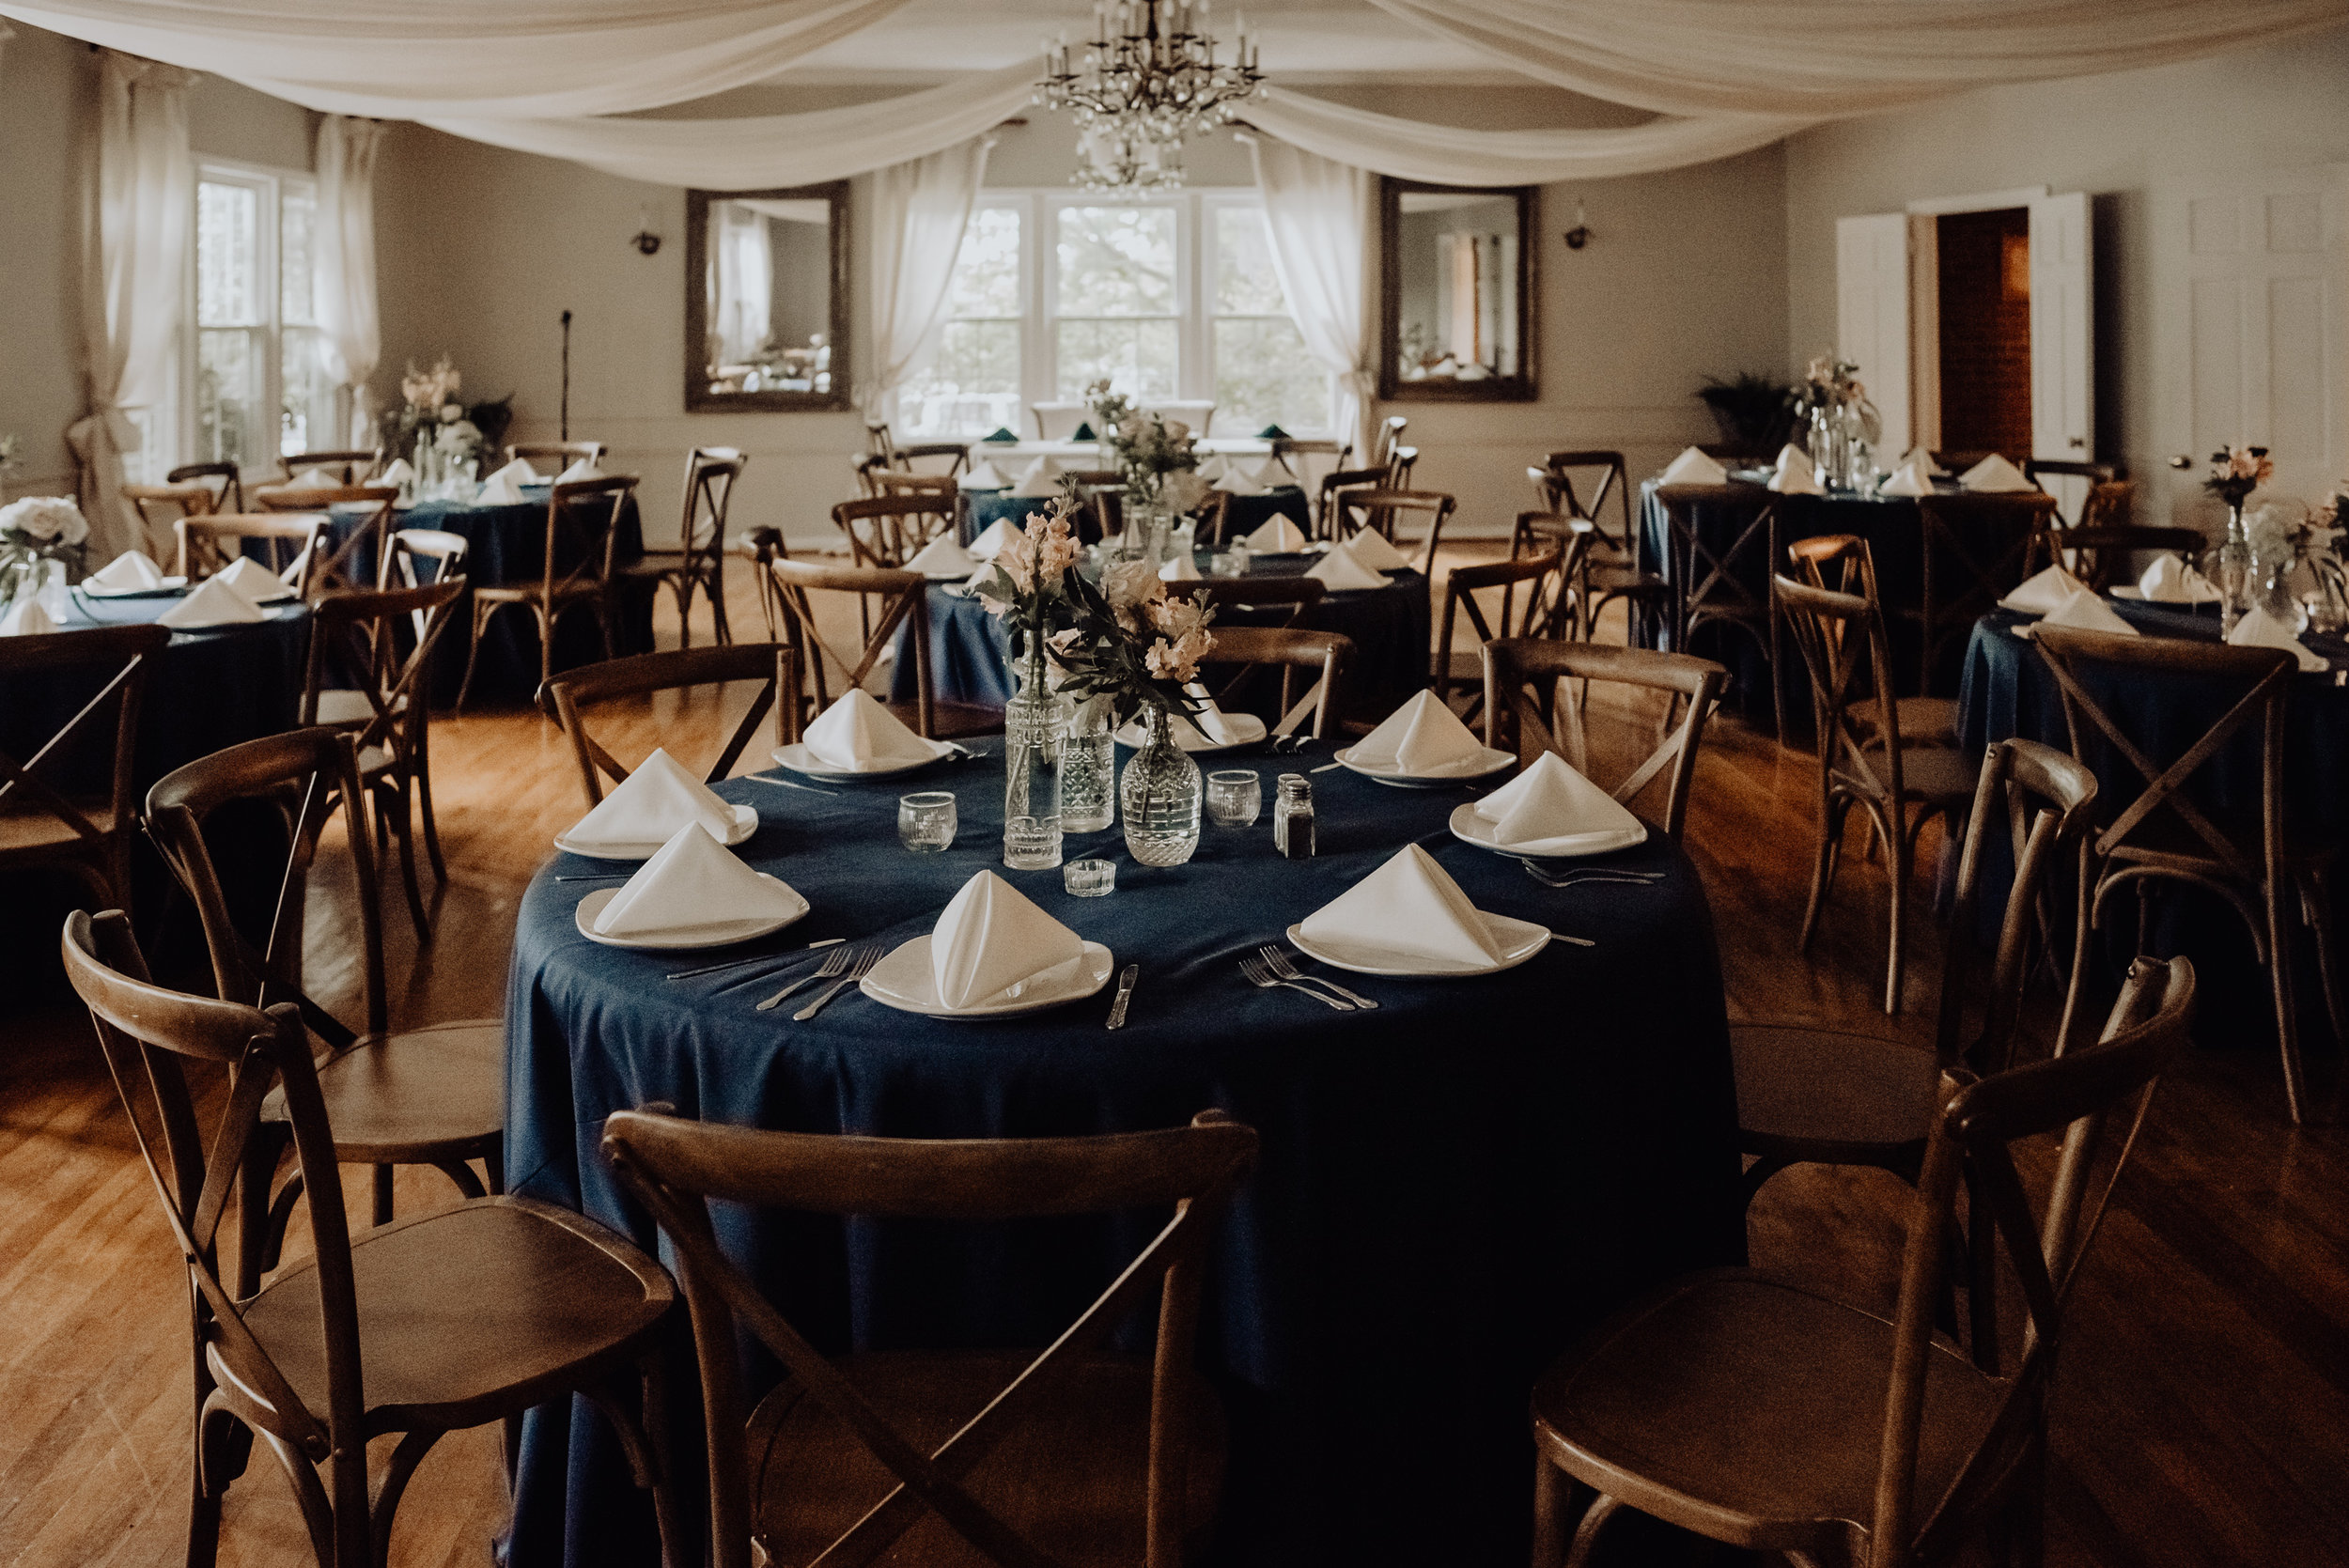 amanda and mike tennessee wedding at tanglewood house by wilde company-18.jpg